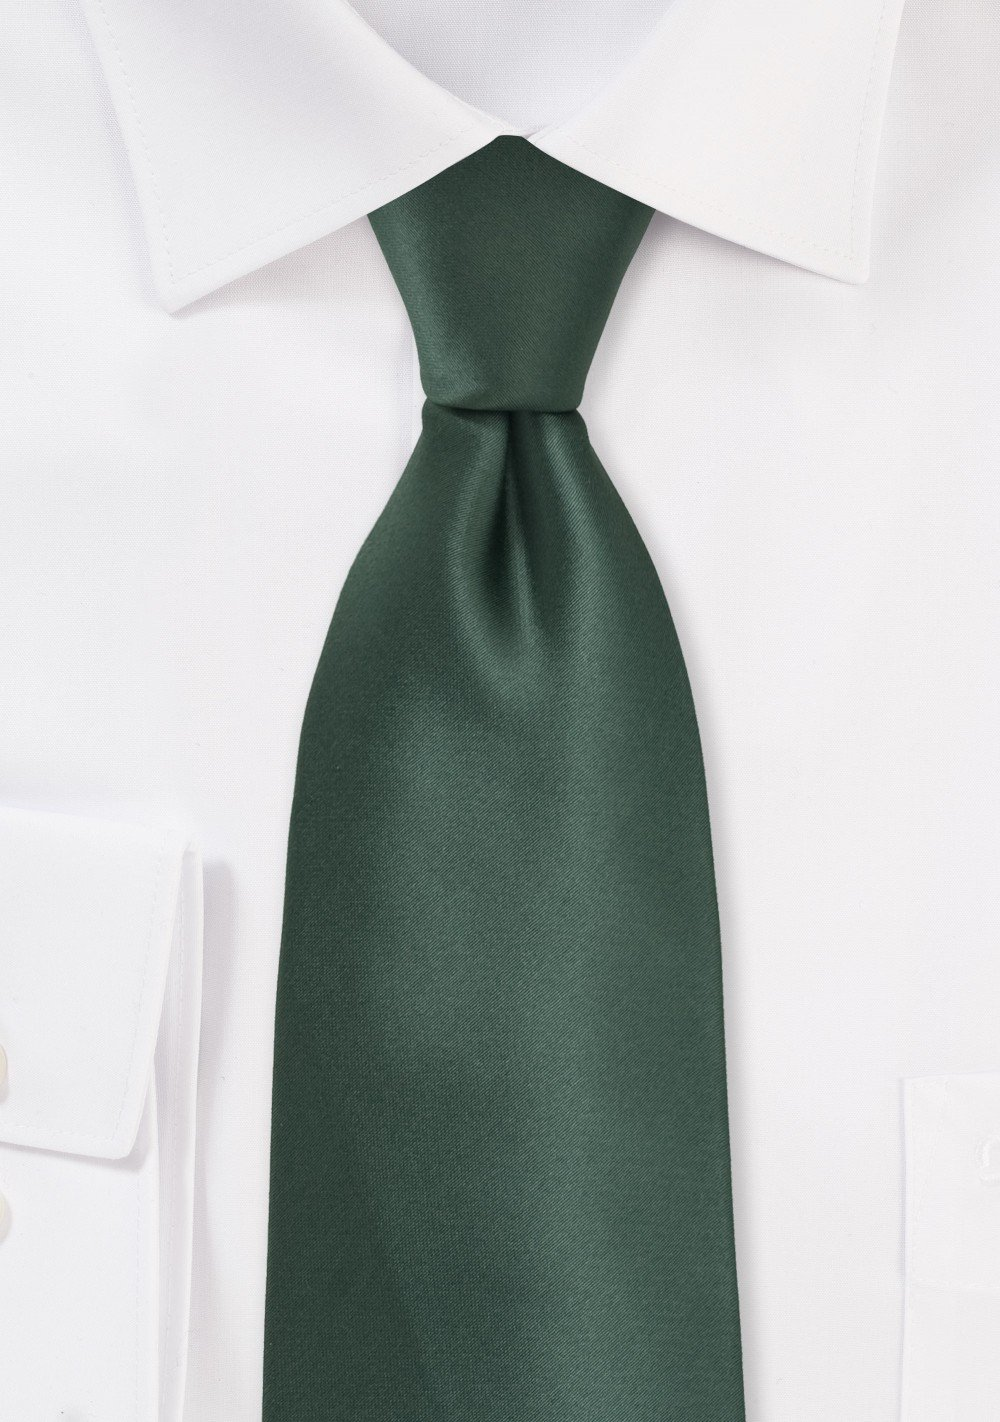 Pine Green Kids Tie in Solid Colors